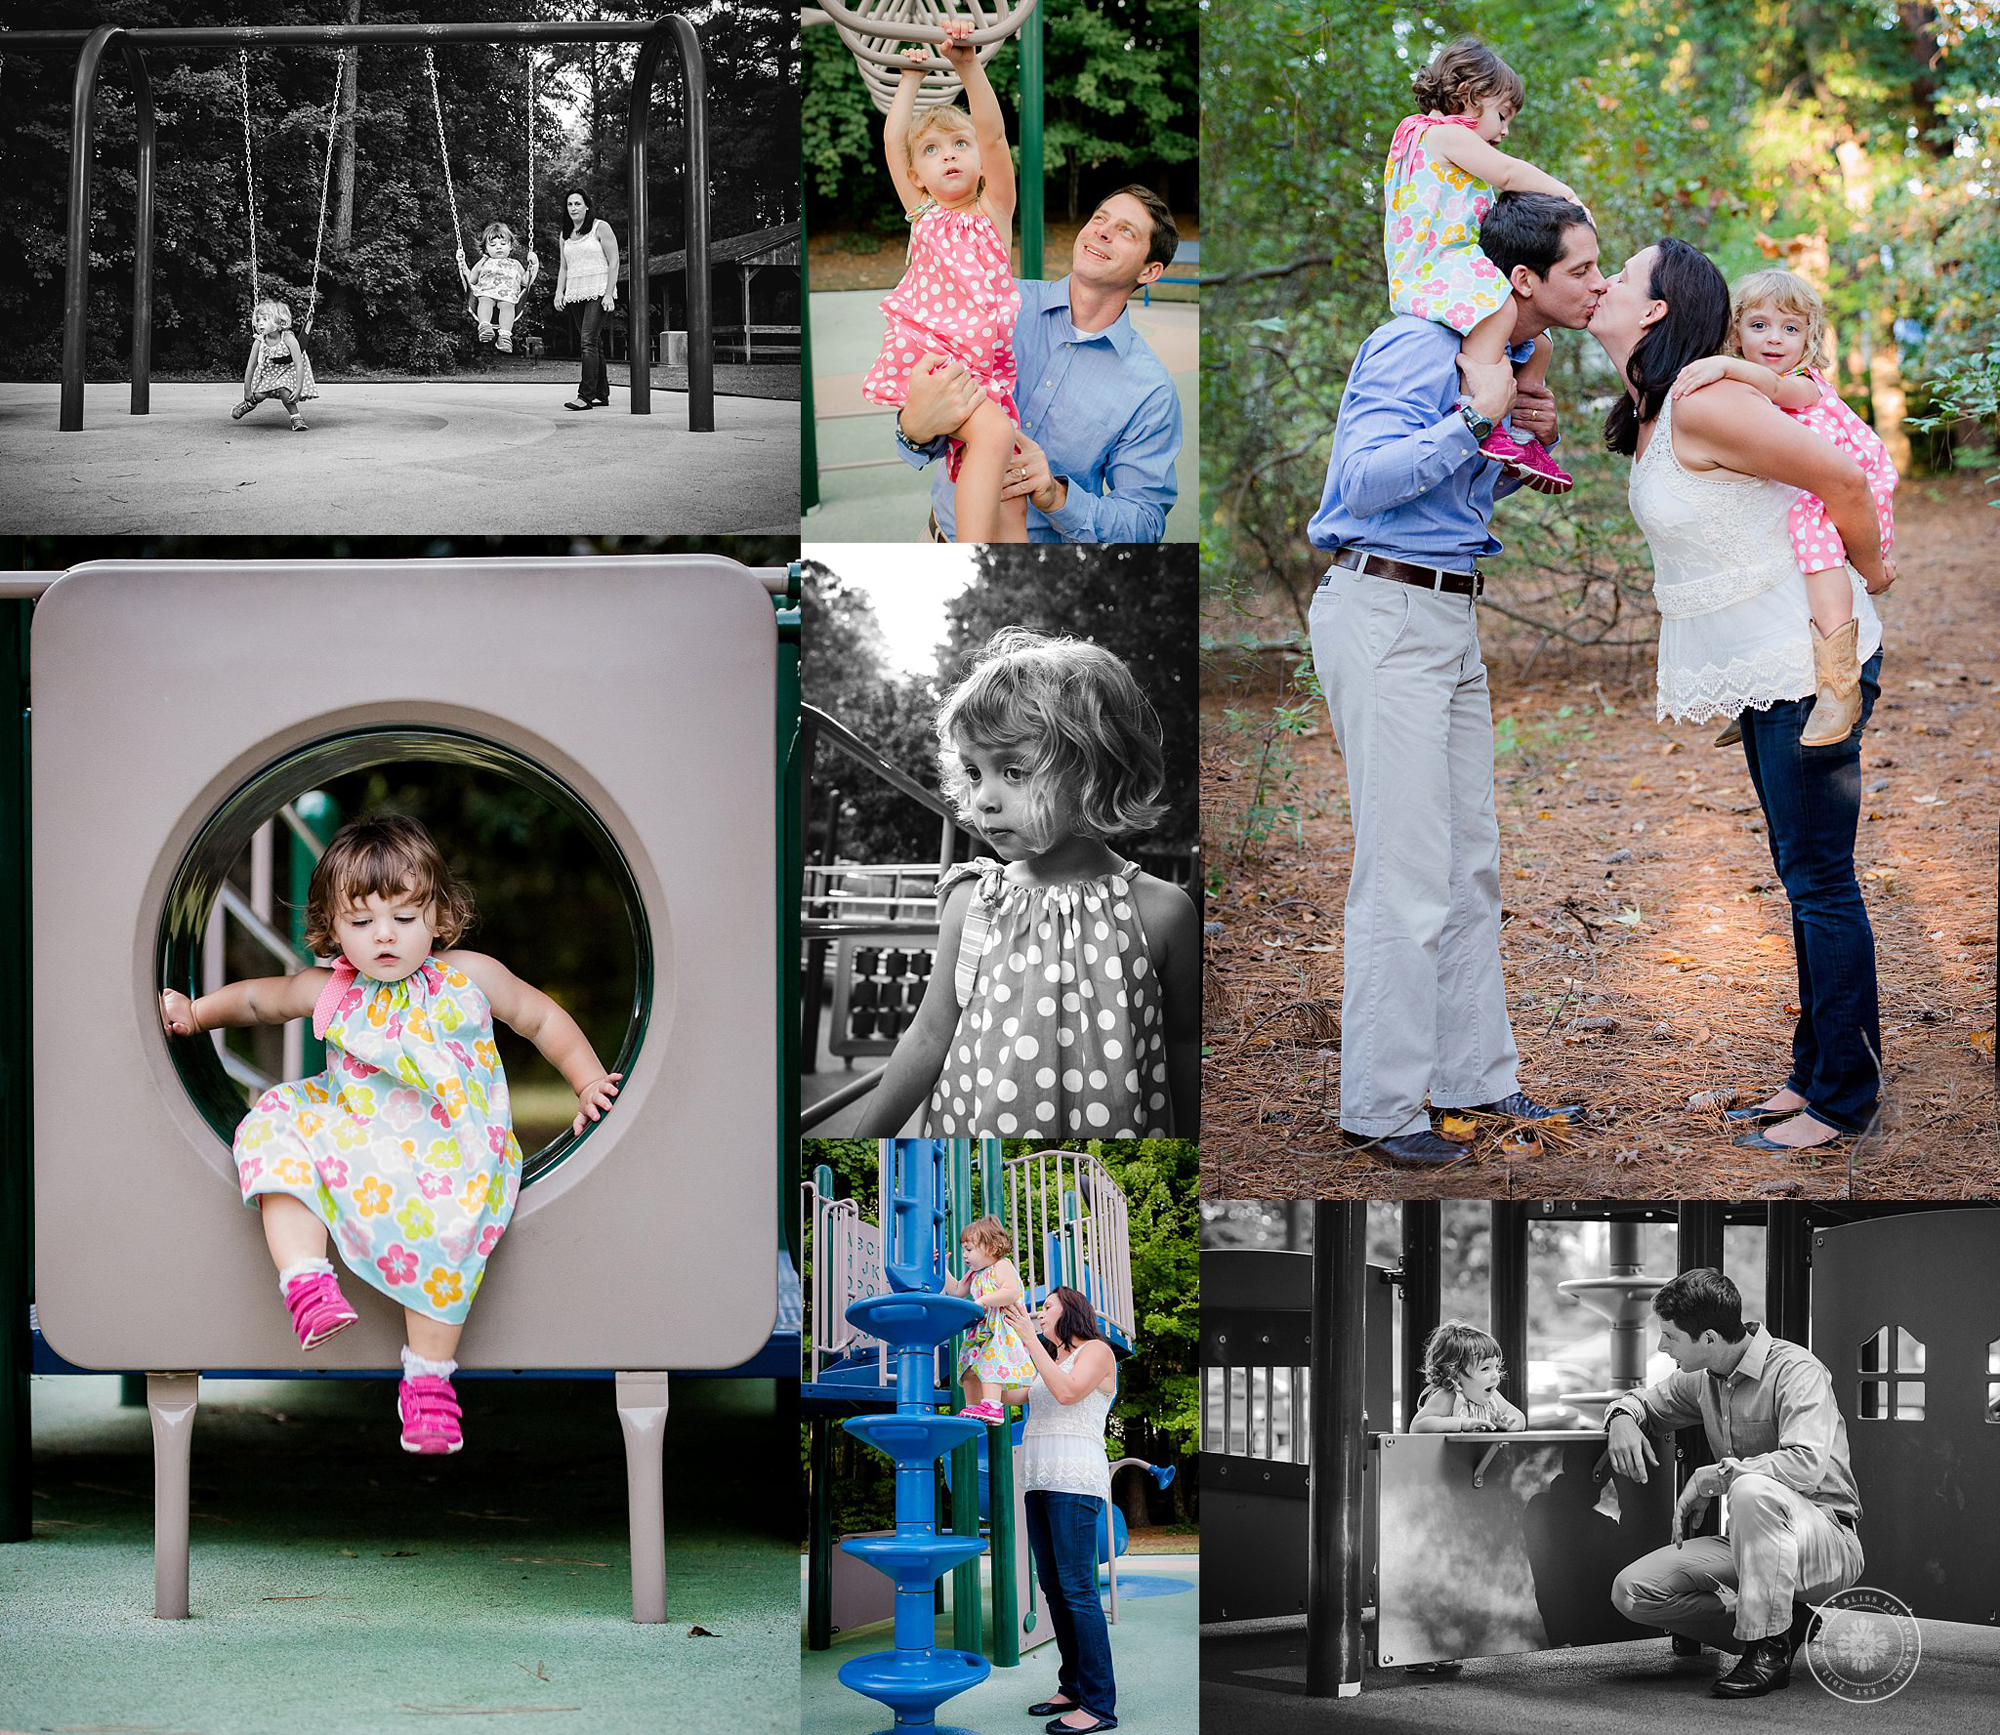 family-plays-in-park-virginia-beach-family-photography-melissa-bliss-photography